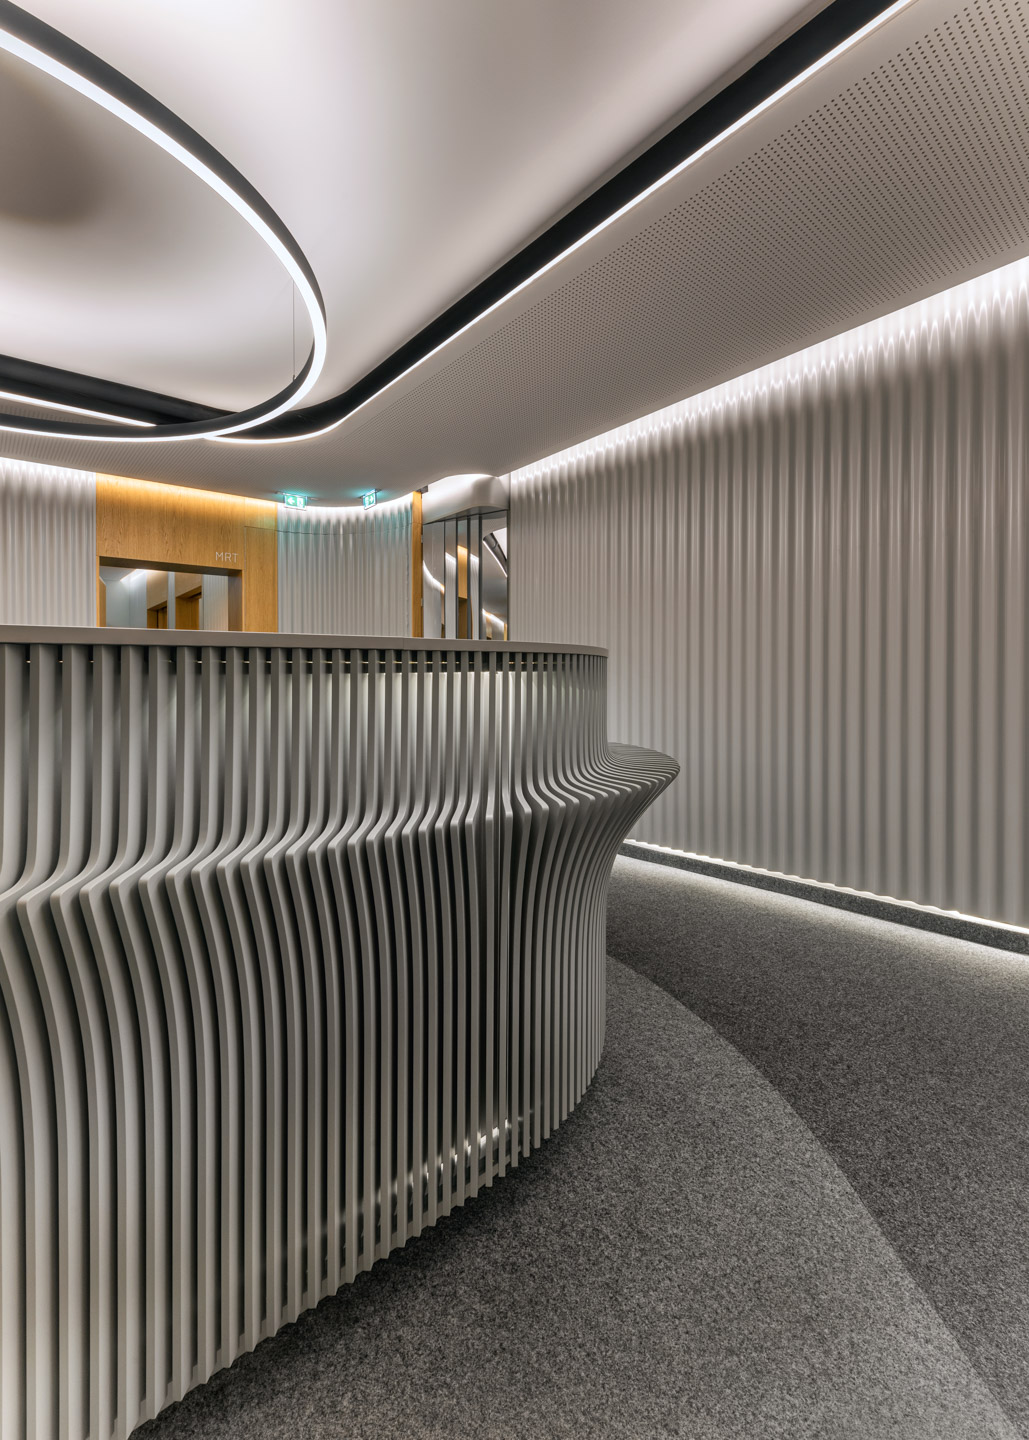 Interior design with curved metal clad walls, concealed lighting and structured reception desk